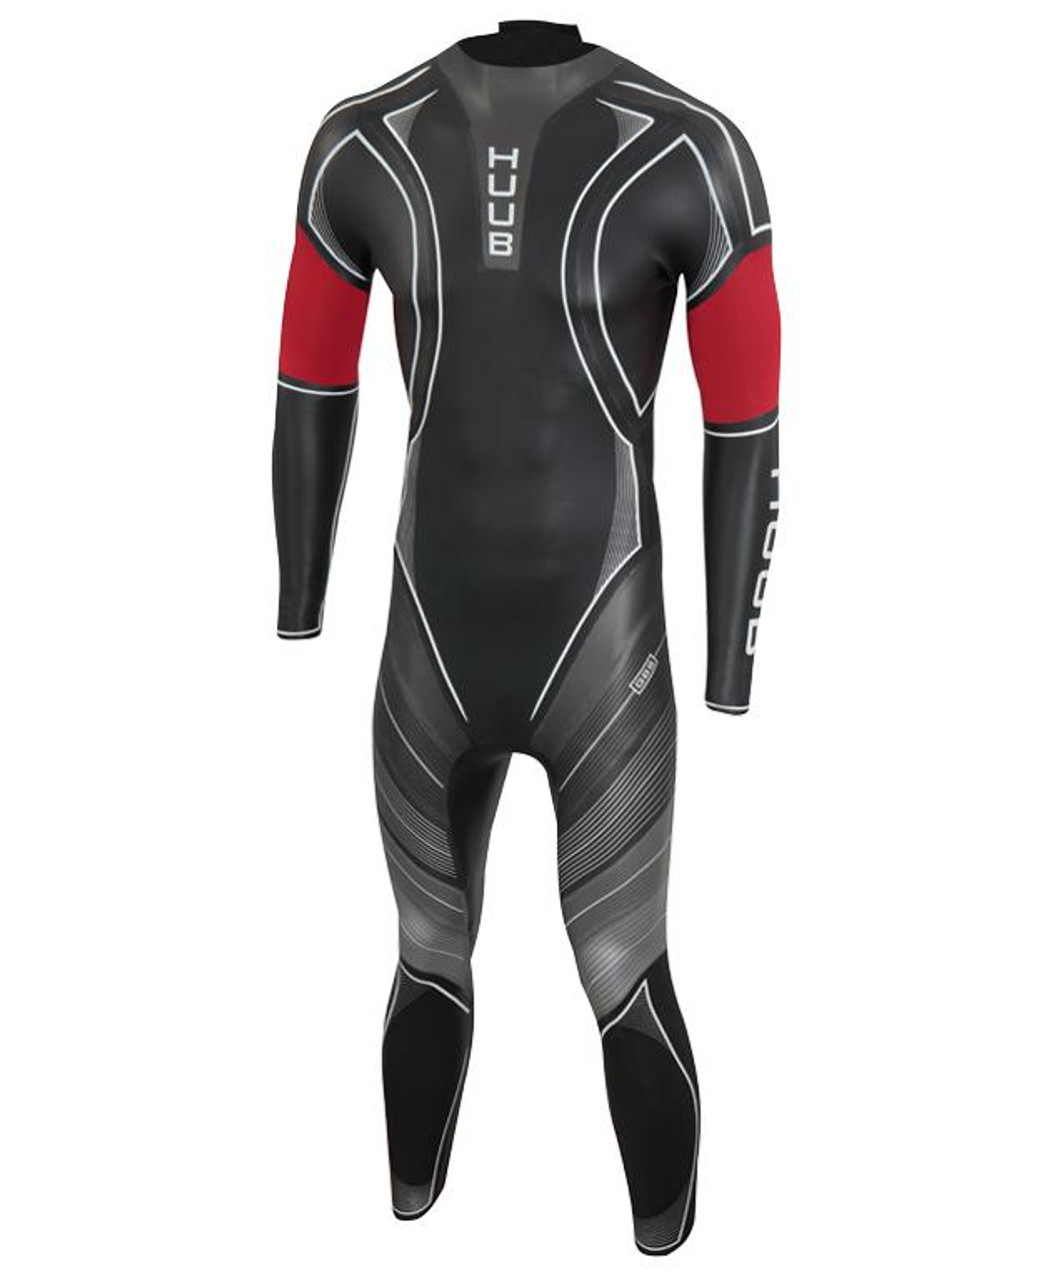 0502f84ed6e HUUB Archimedes 3 Full Wetsuit Mens - Gear West Ski and Run